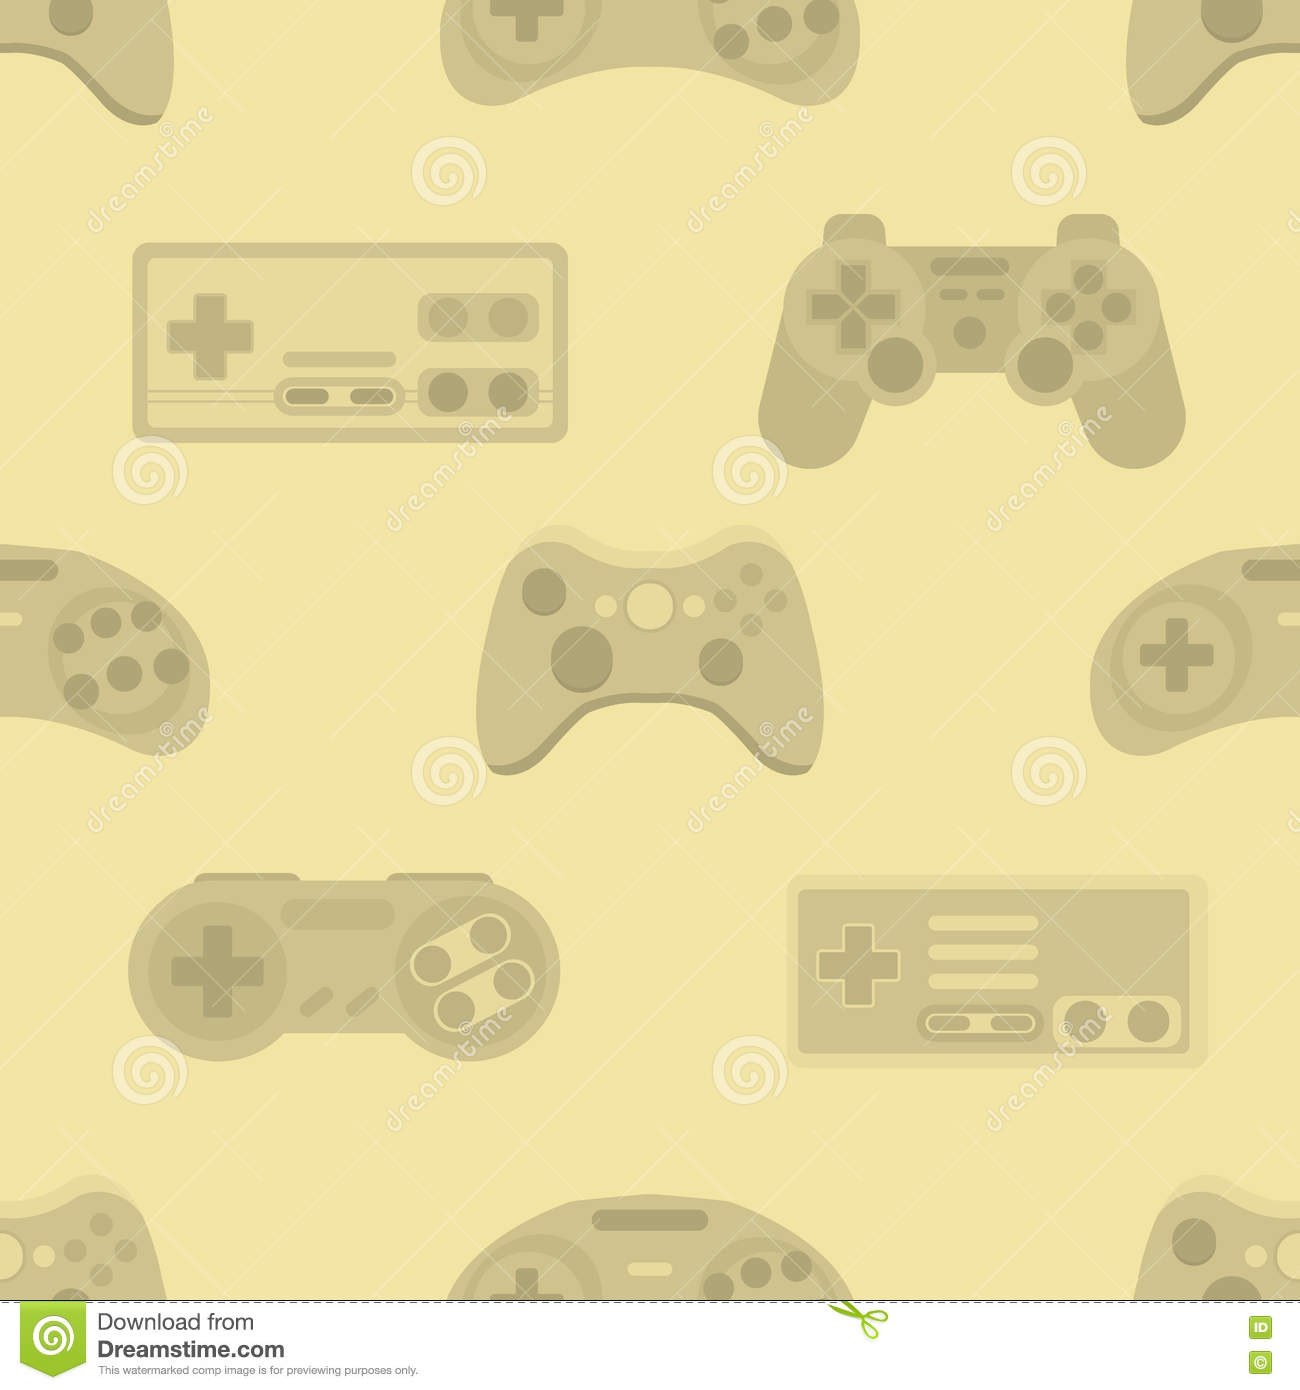 Vector Illustration Game Controller Colorful Vector